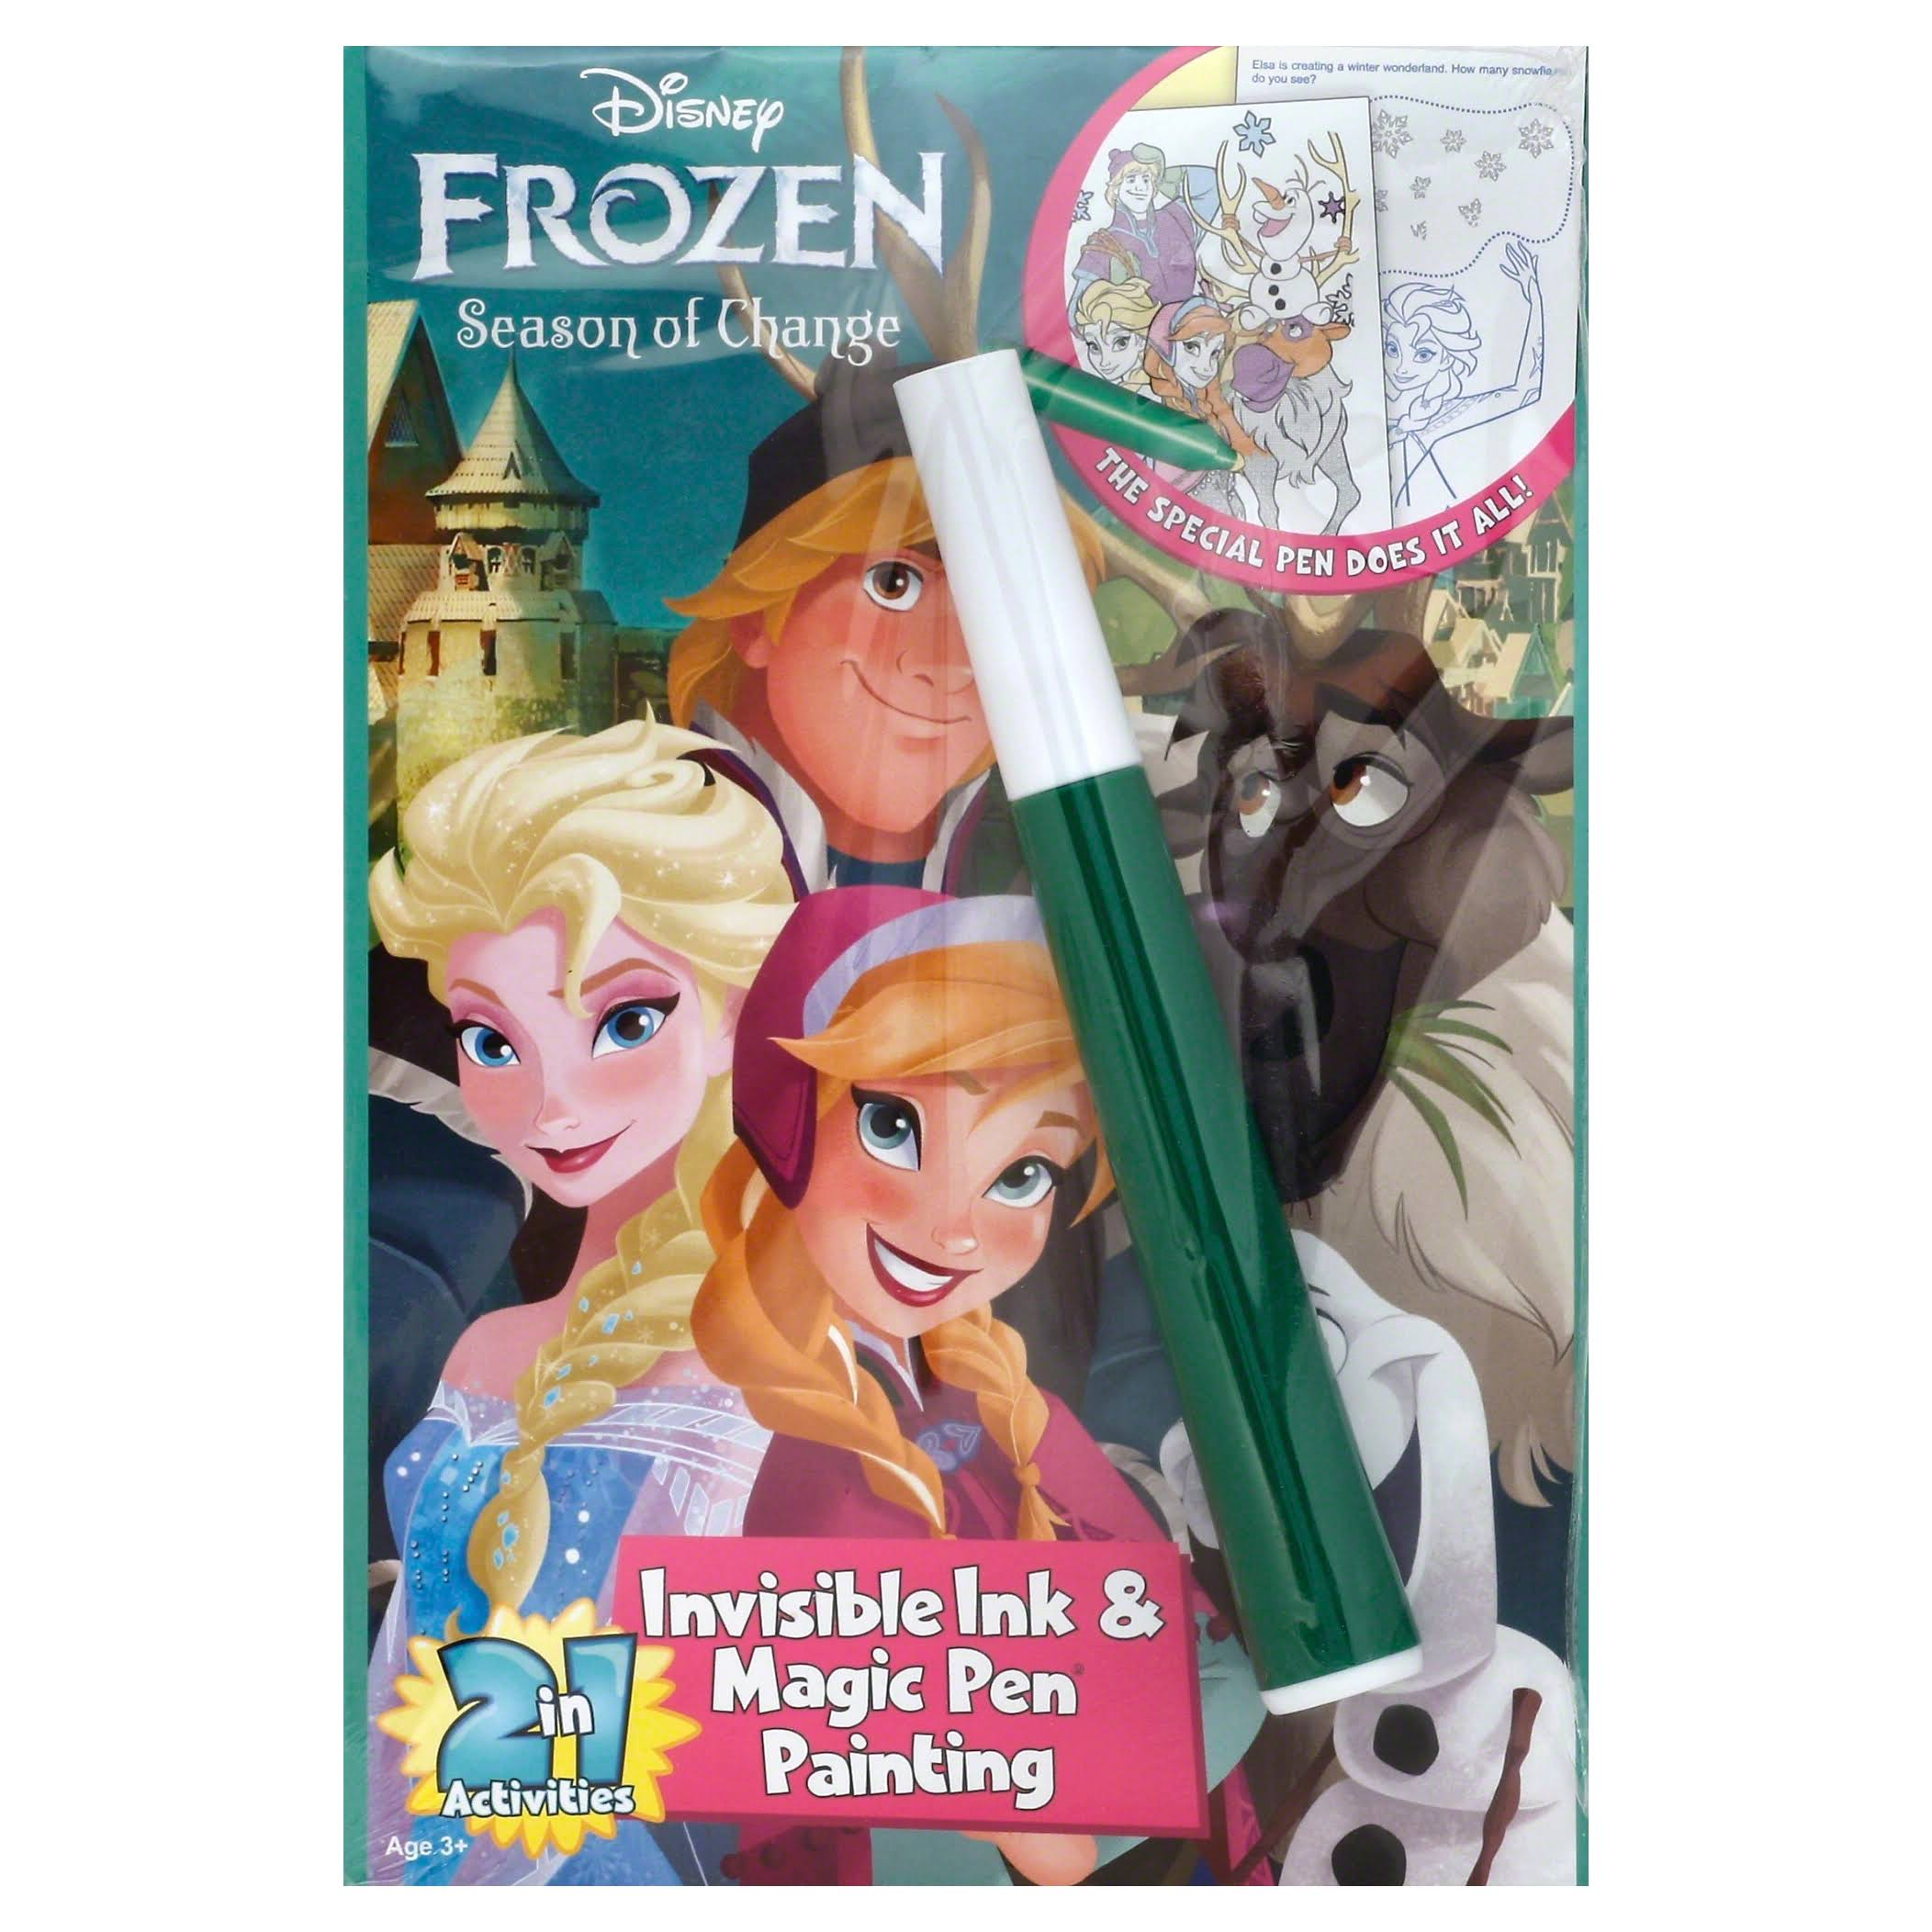 Disney Frozen Season of Change Invisible Ink and Magic Pen Painting Set